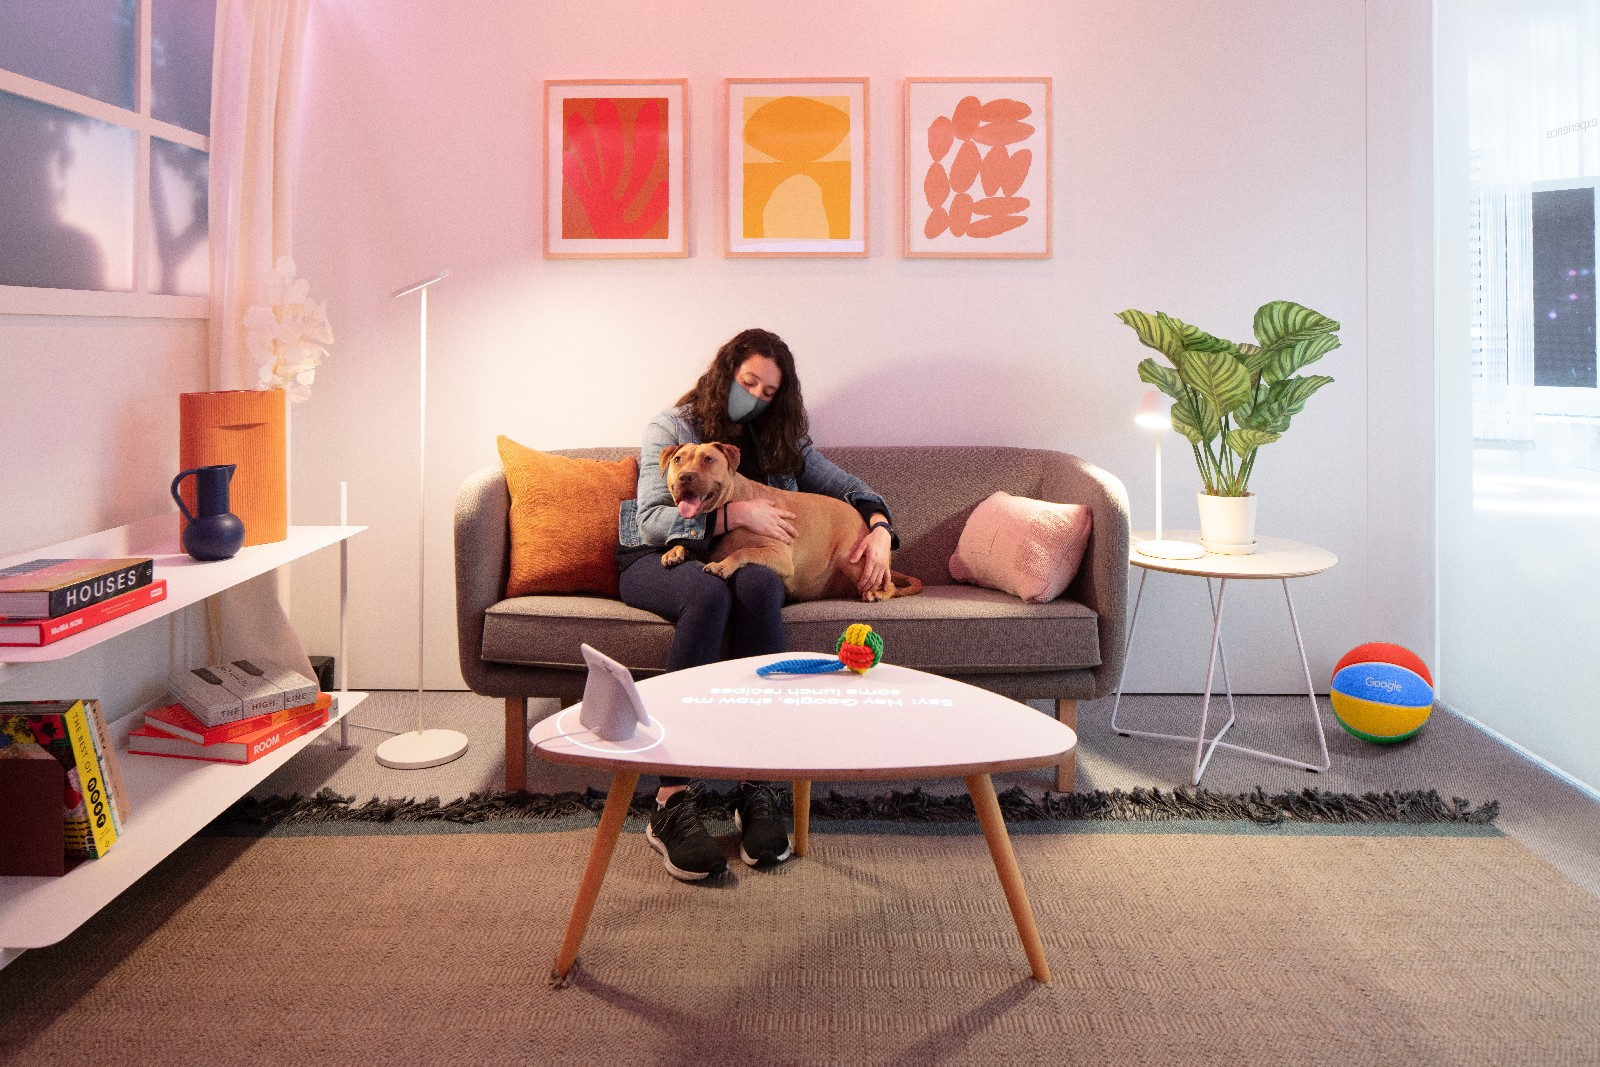 <p>Google Store Chelsea. A Home-themed Sandbox featuring a couch, coffee table, shelves and plants. A Nest Hub smart display sits on the coffee table.</p>